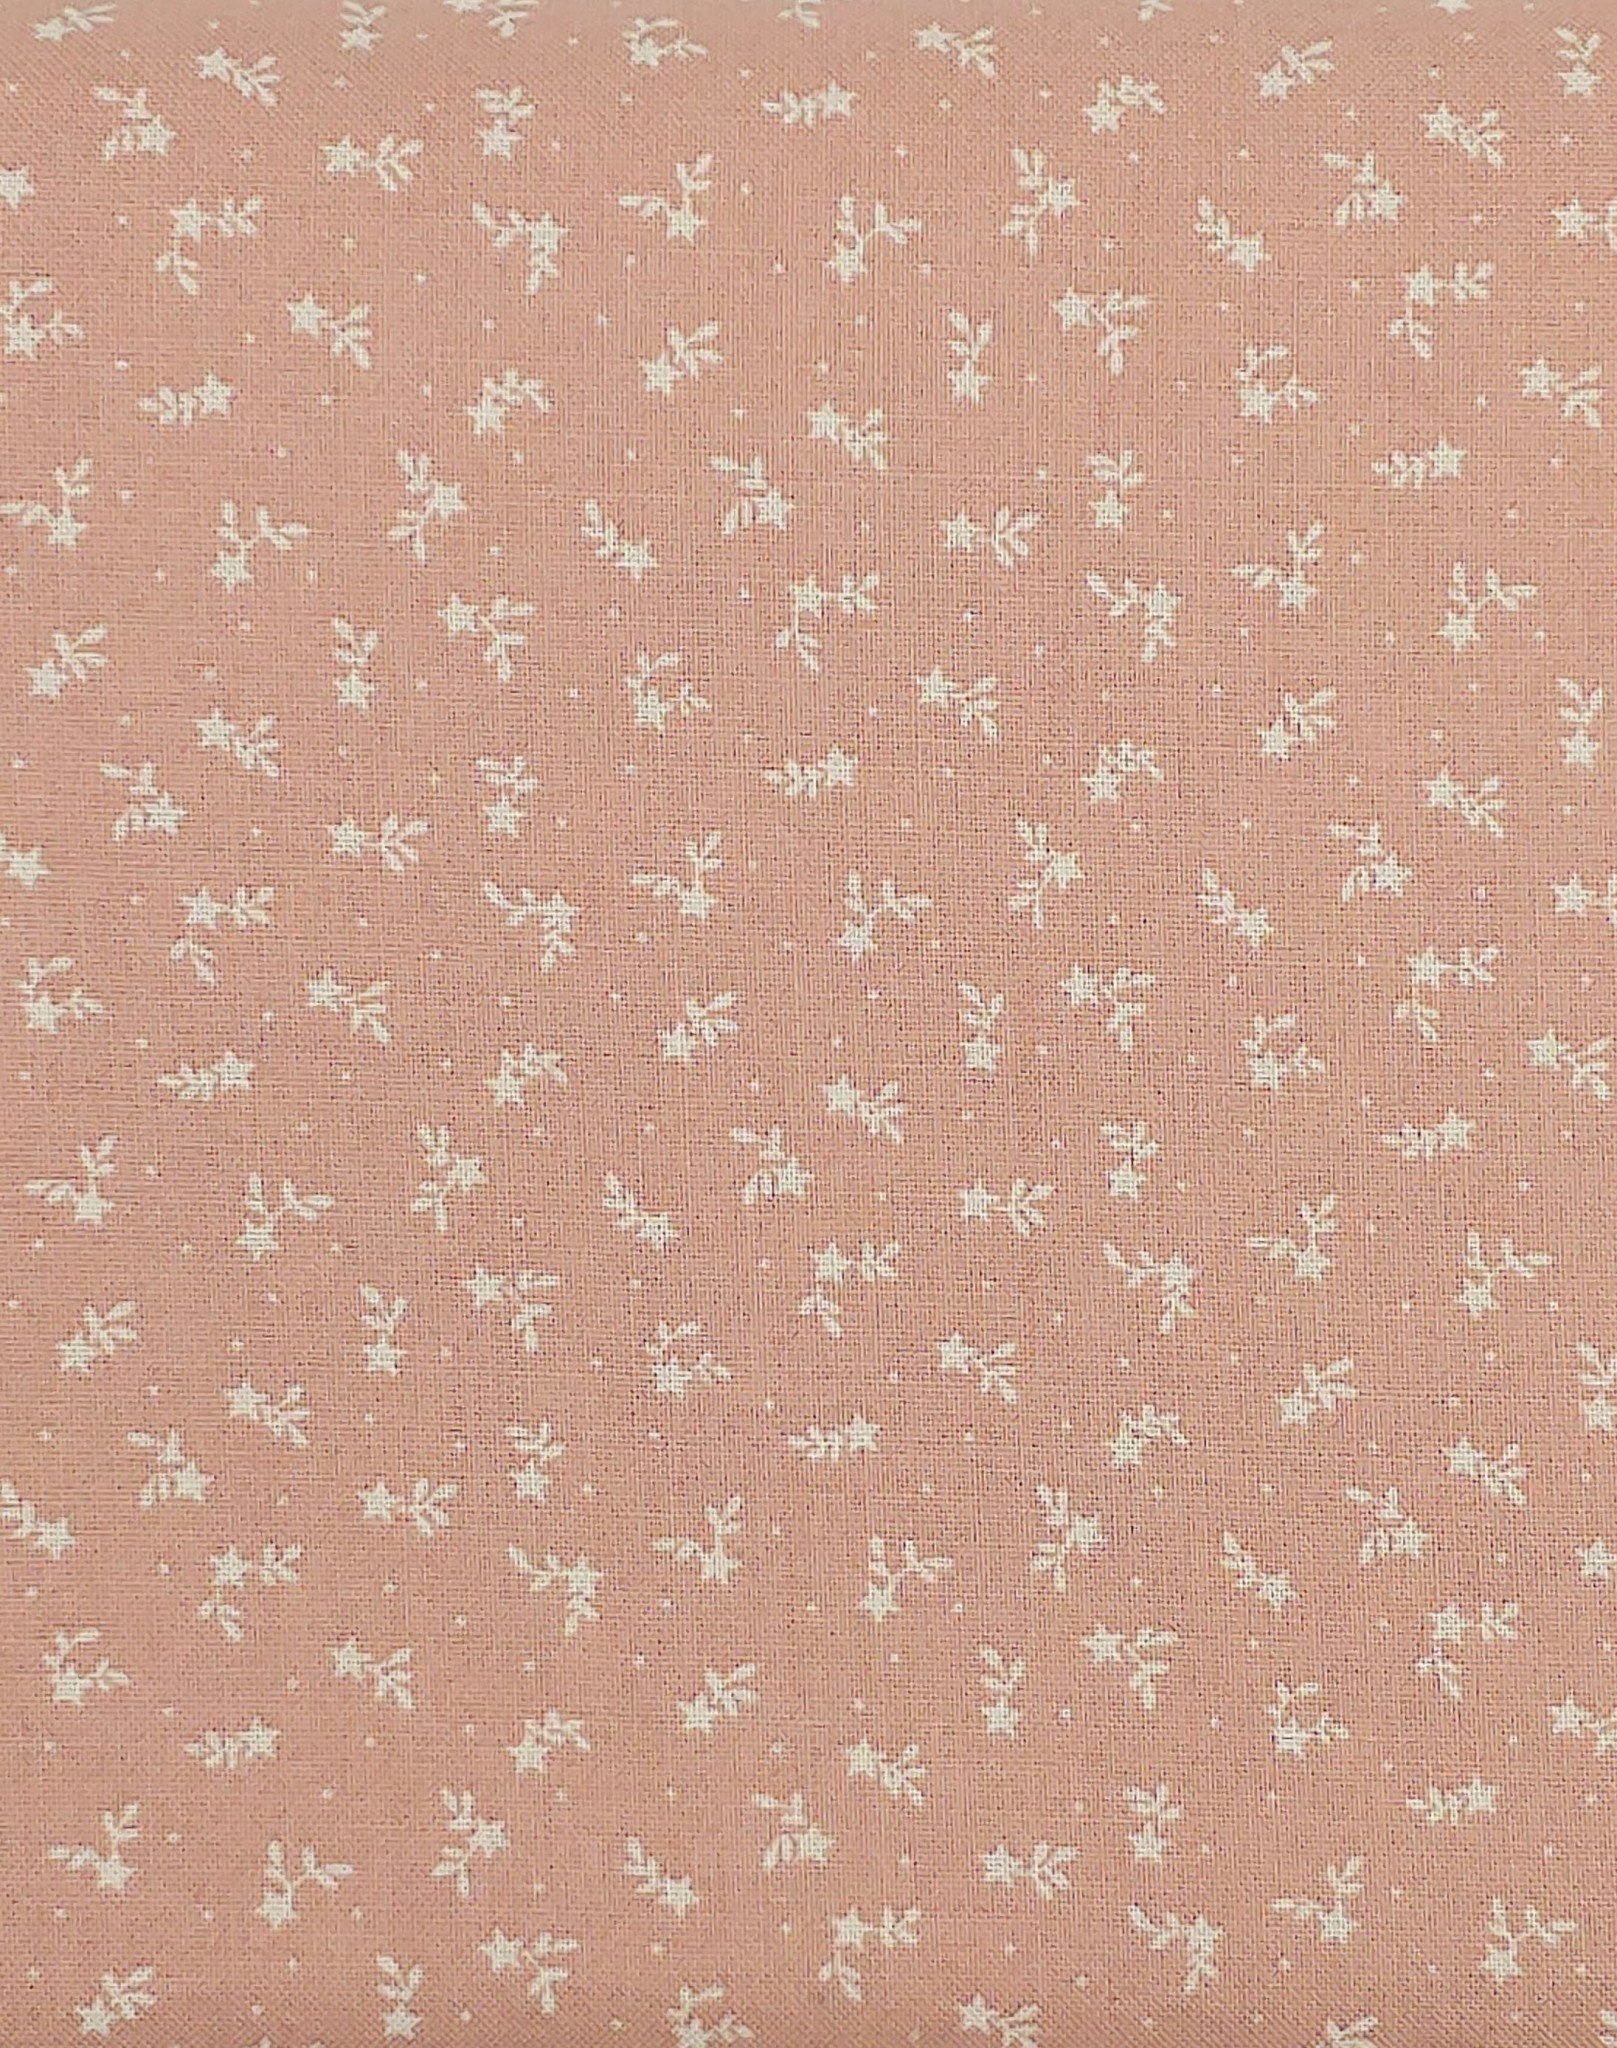 LECIEN PER CM OR $13/M LECIEN Tiny Stars and Branches Pink